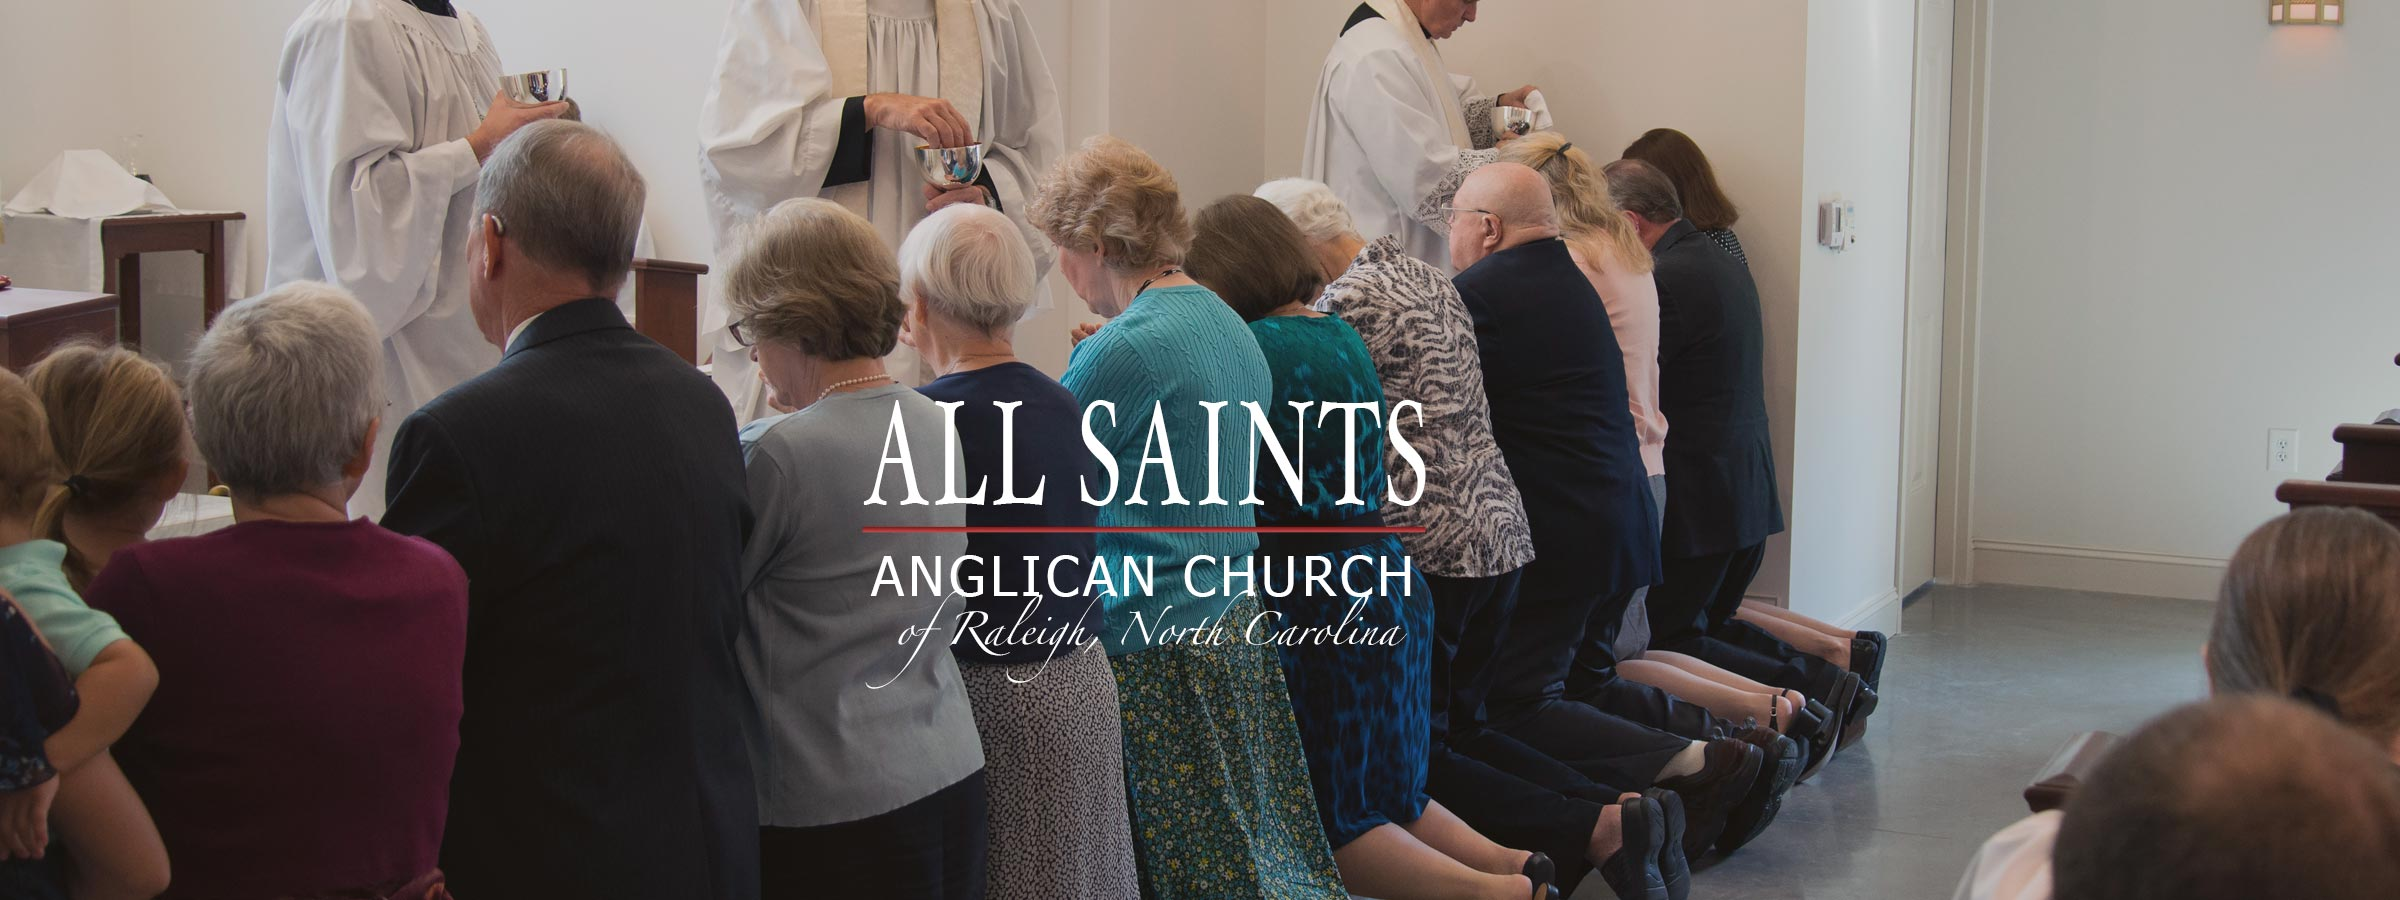 all saints anglican